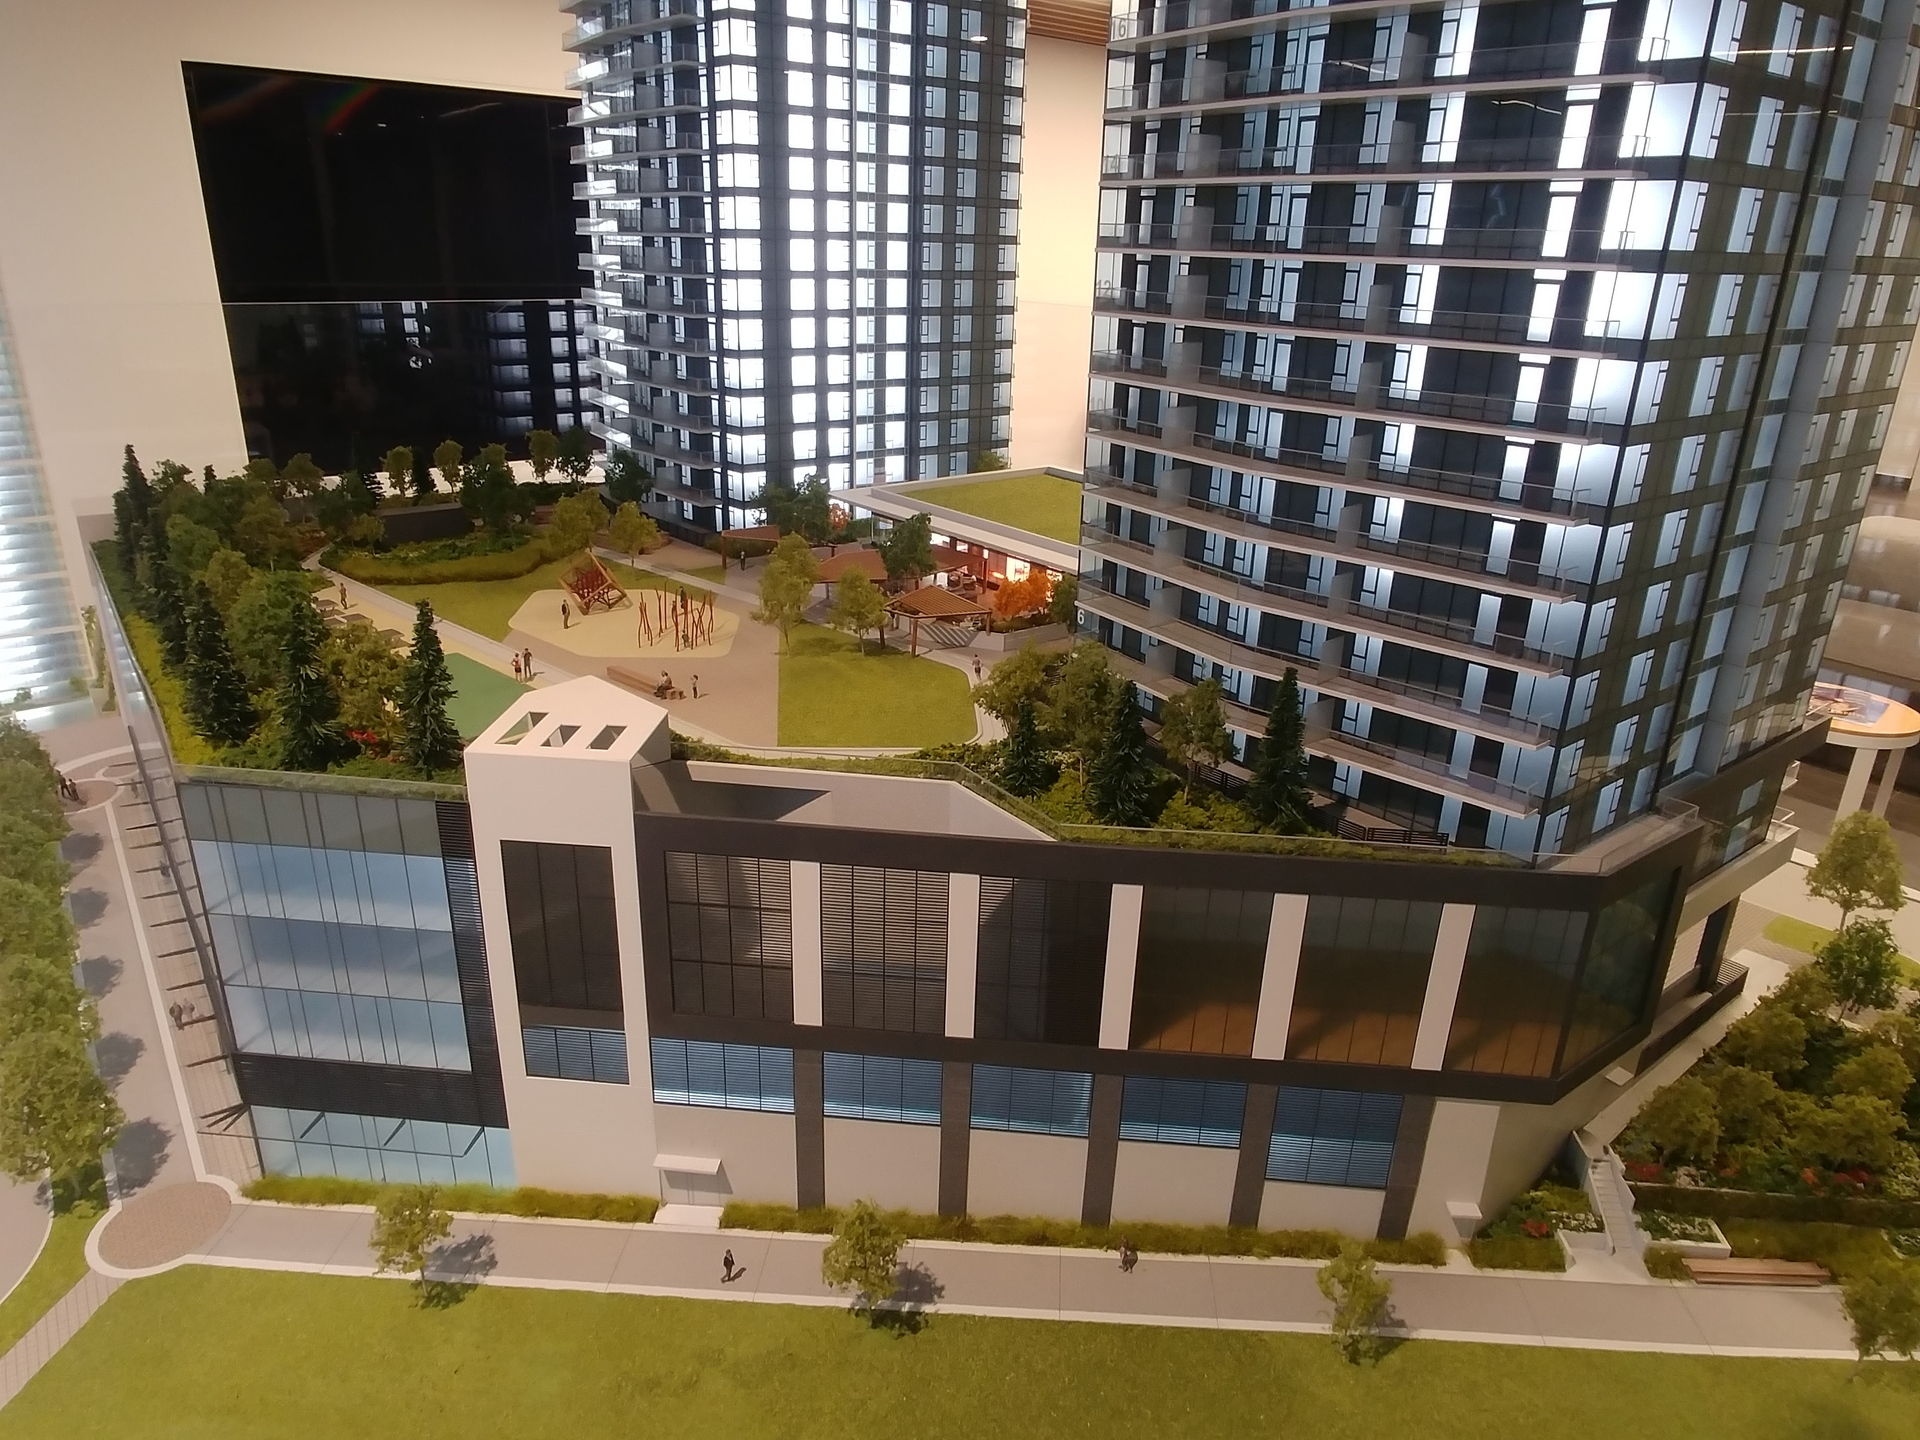 soco-sw-podium-showing-commercial-units-and-indoor-sports-court at SOCO (319 North Road, Coquitlam West, Coquitlam)